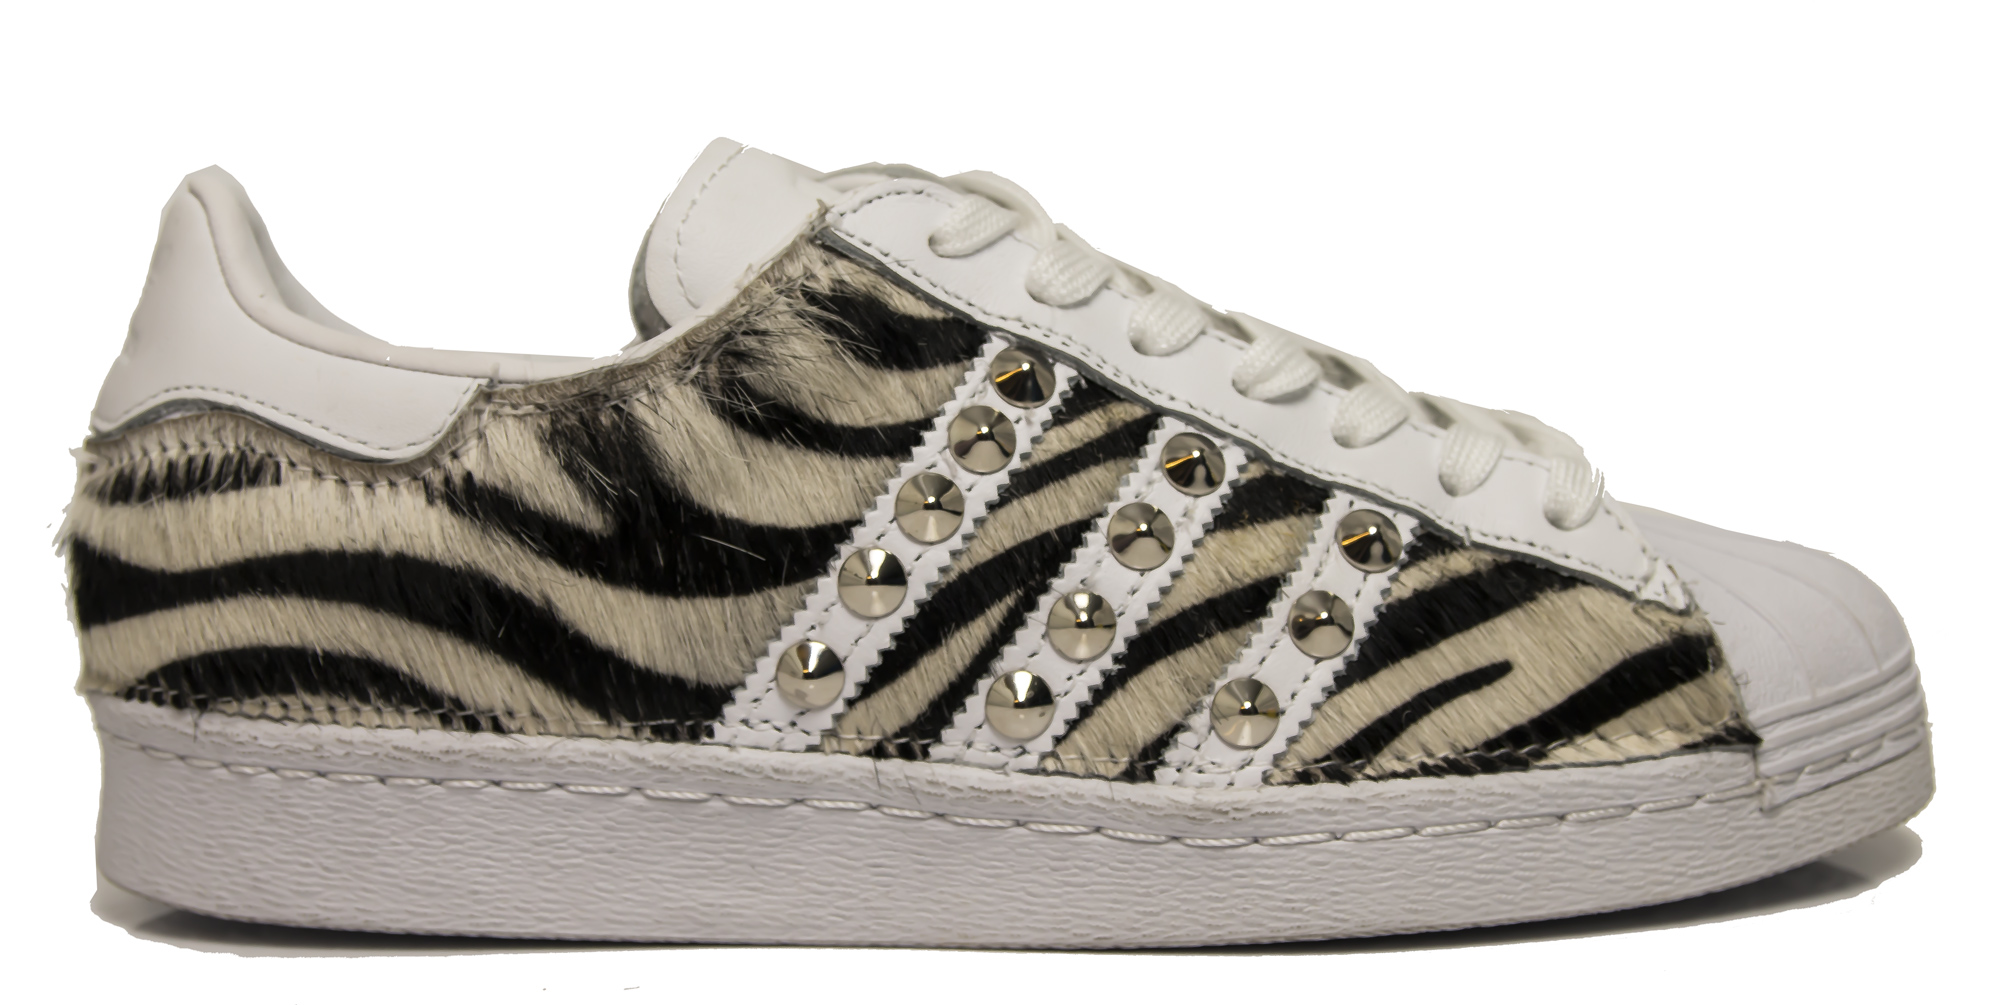 sports shoes ddc40 a1ee3 Sneakers Adidas Superstar NAIROBI personalizzate in cavallino zebra e  borchie